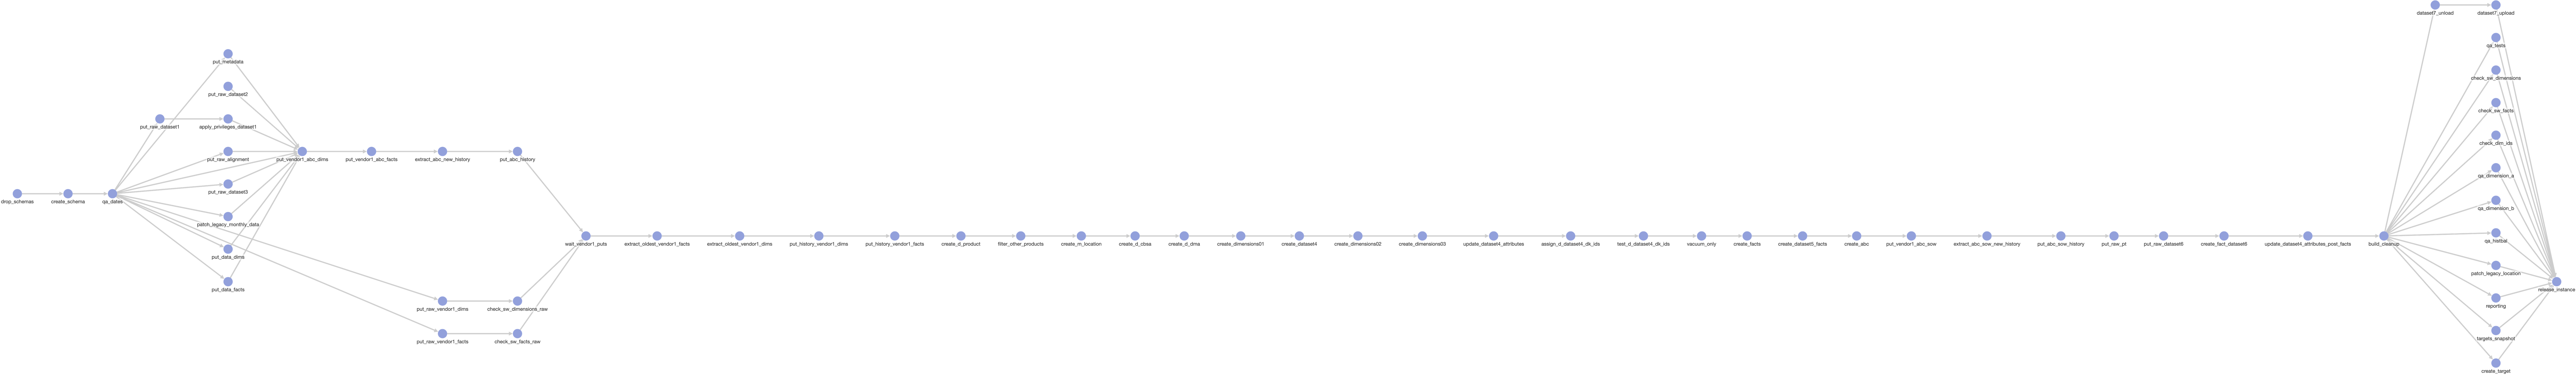 An example of a complex graph.